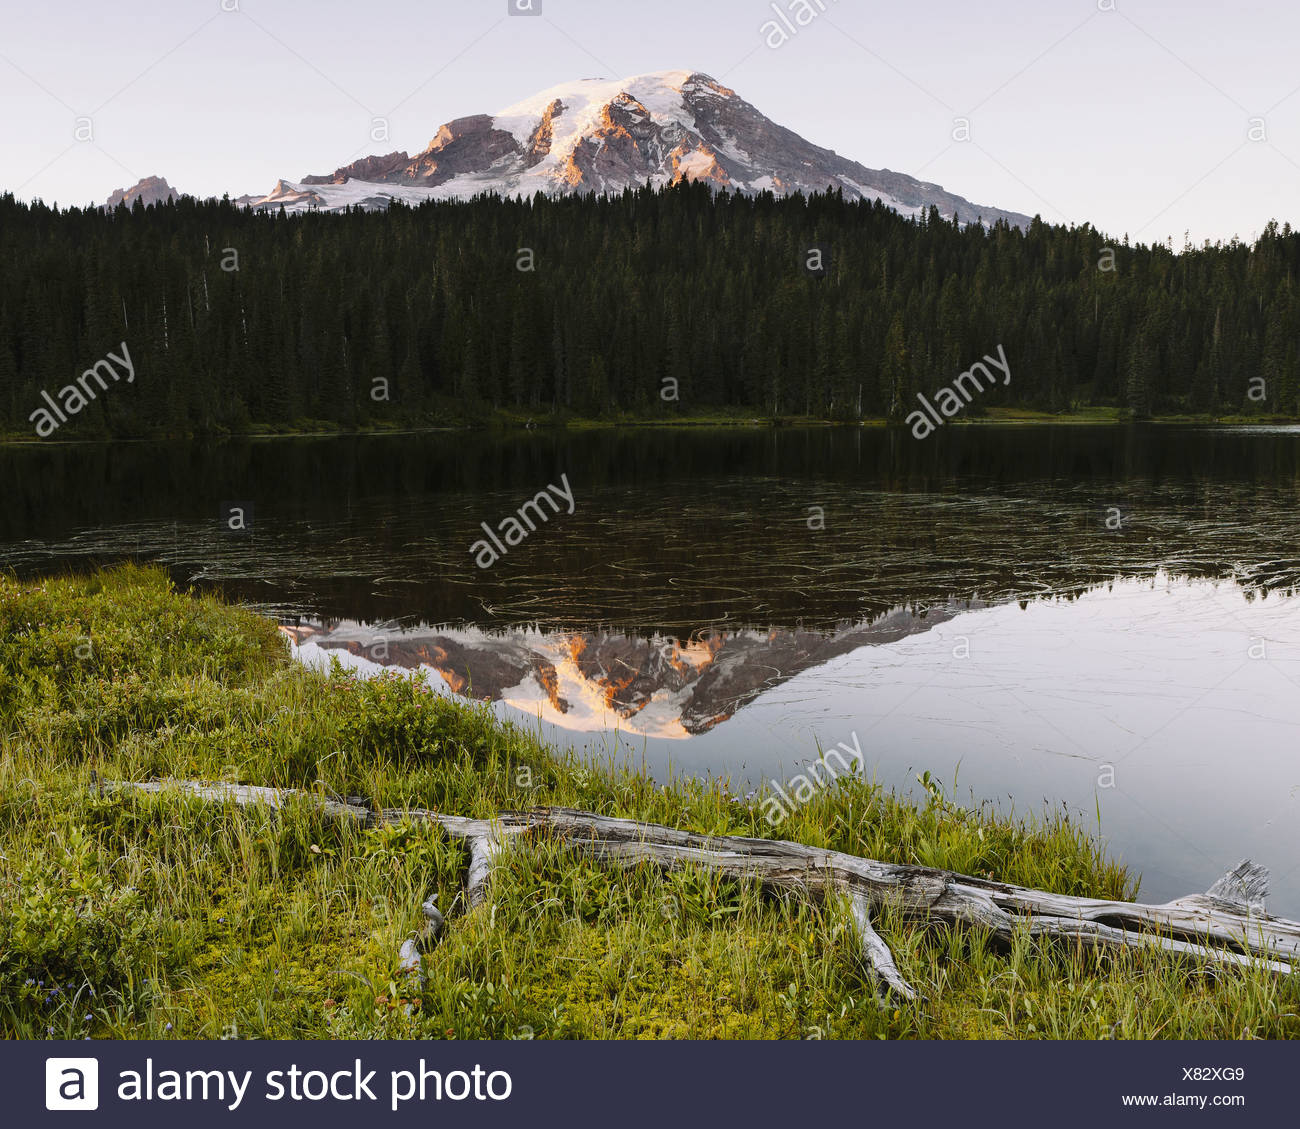 View of Mount Rainier from Reflection Lakes at dawn in Mount Rainier national park - Stock Image